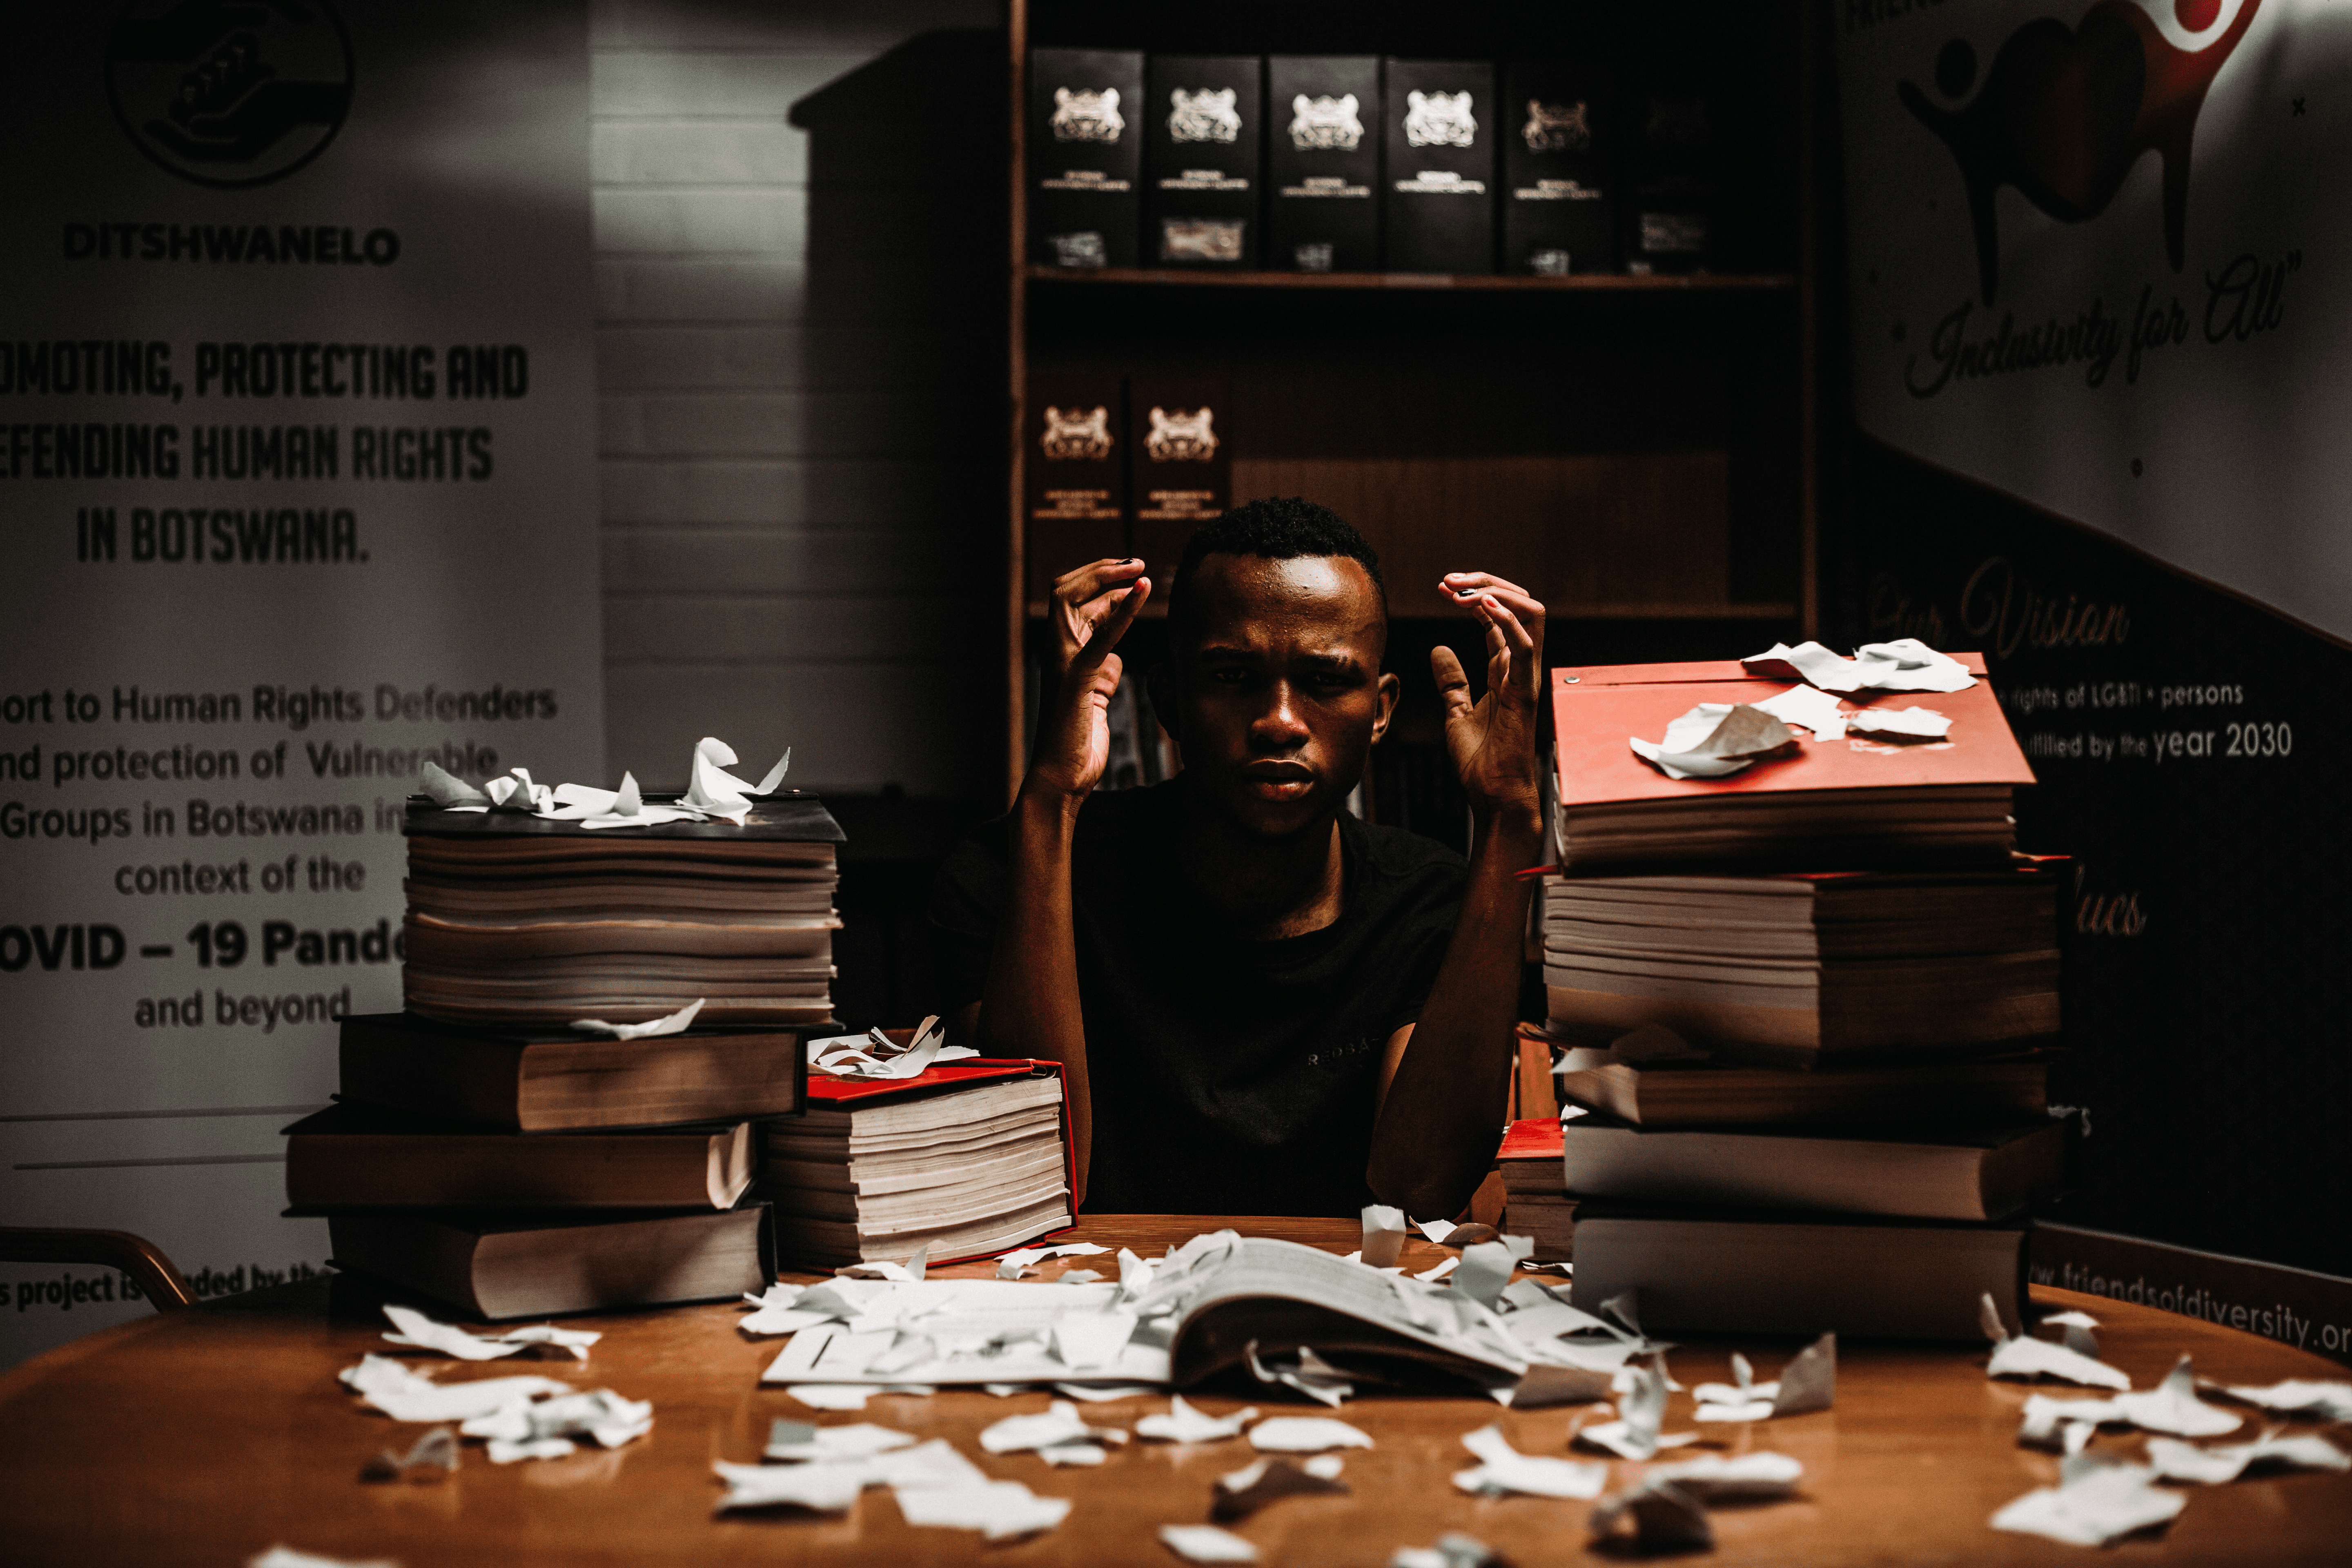 A person sitting on a table piled with files and pieces of torn paper